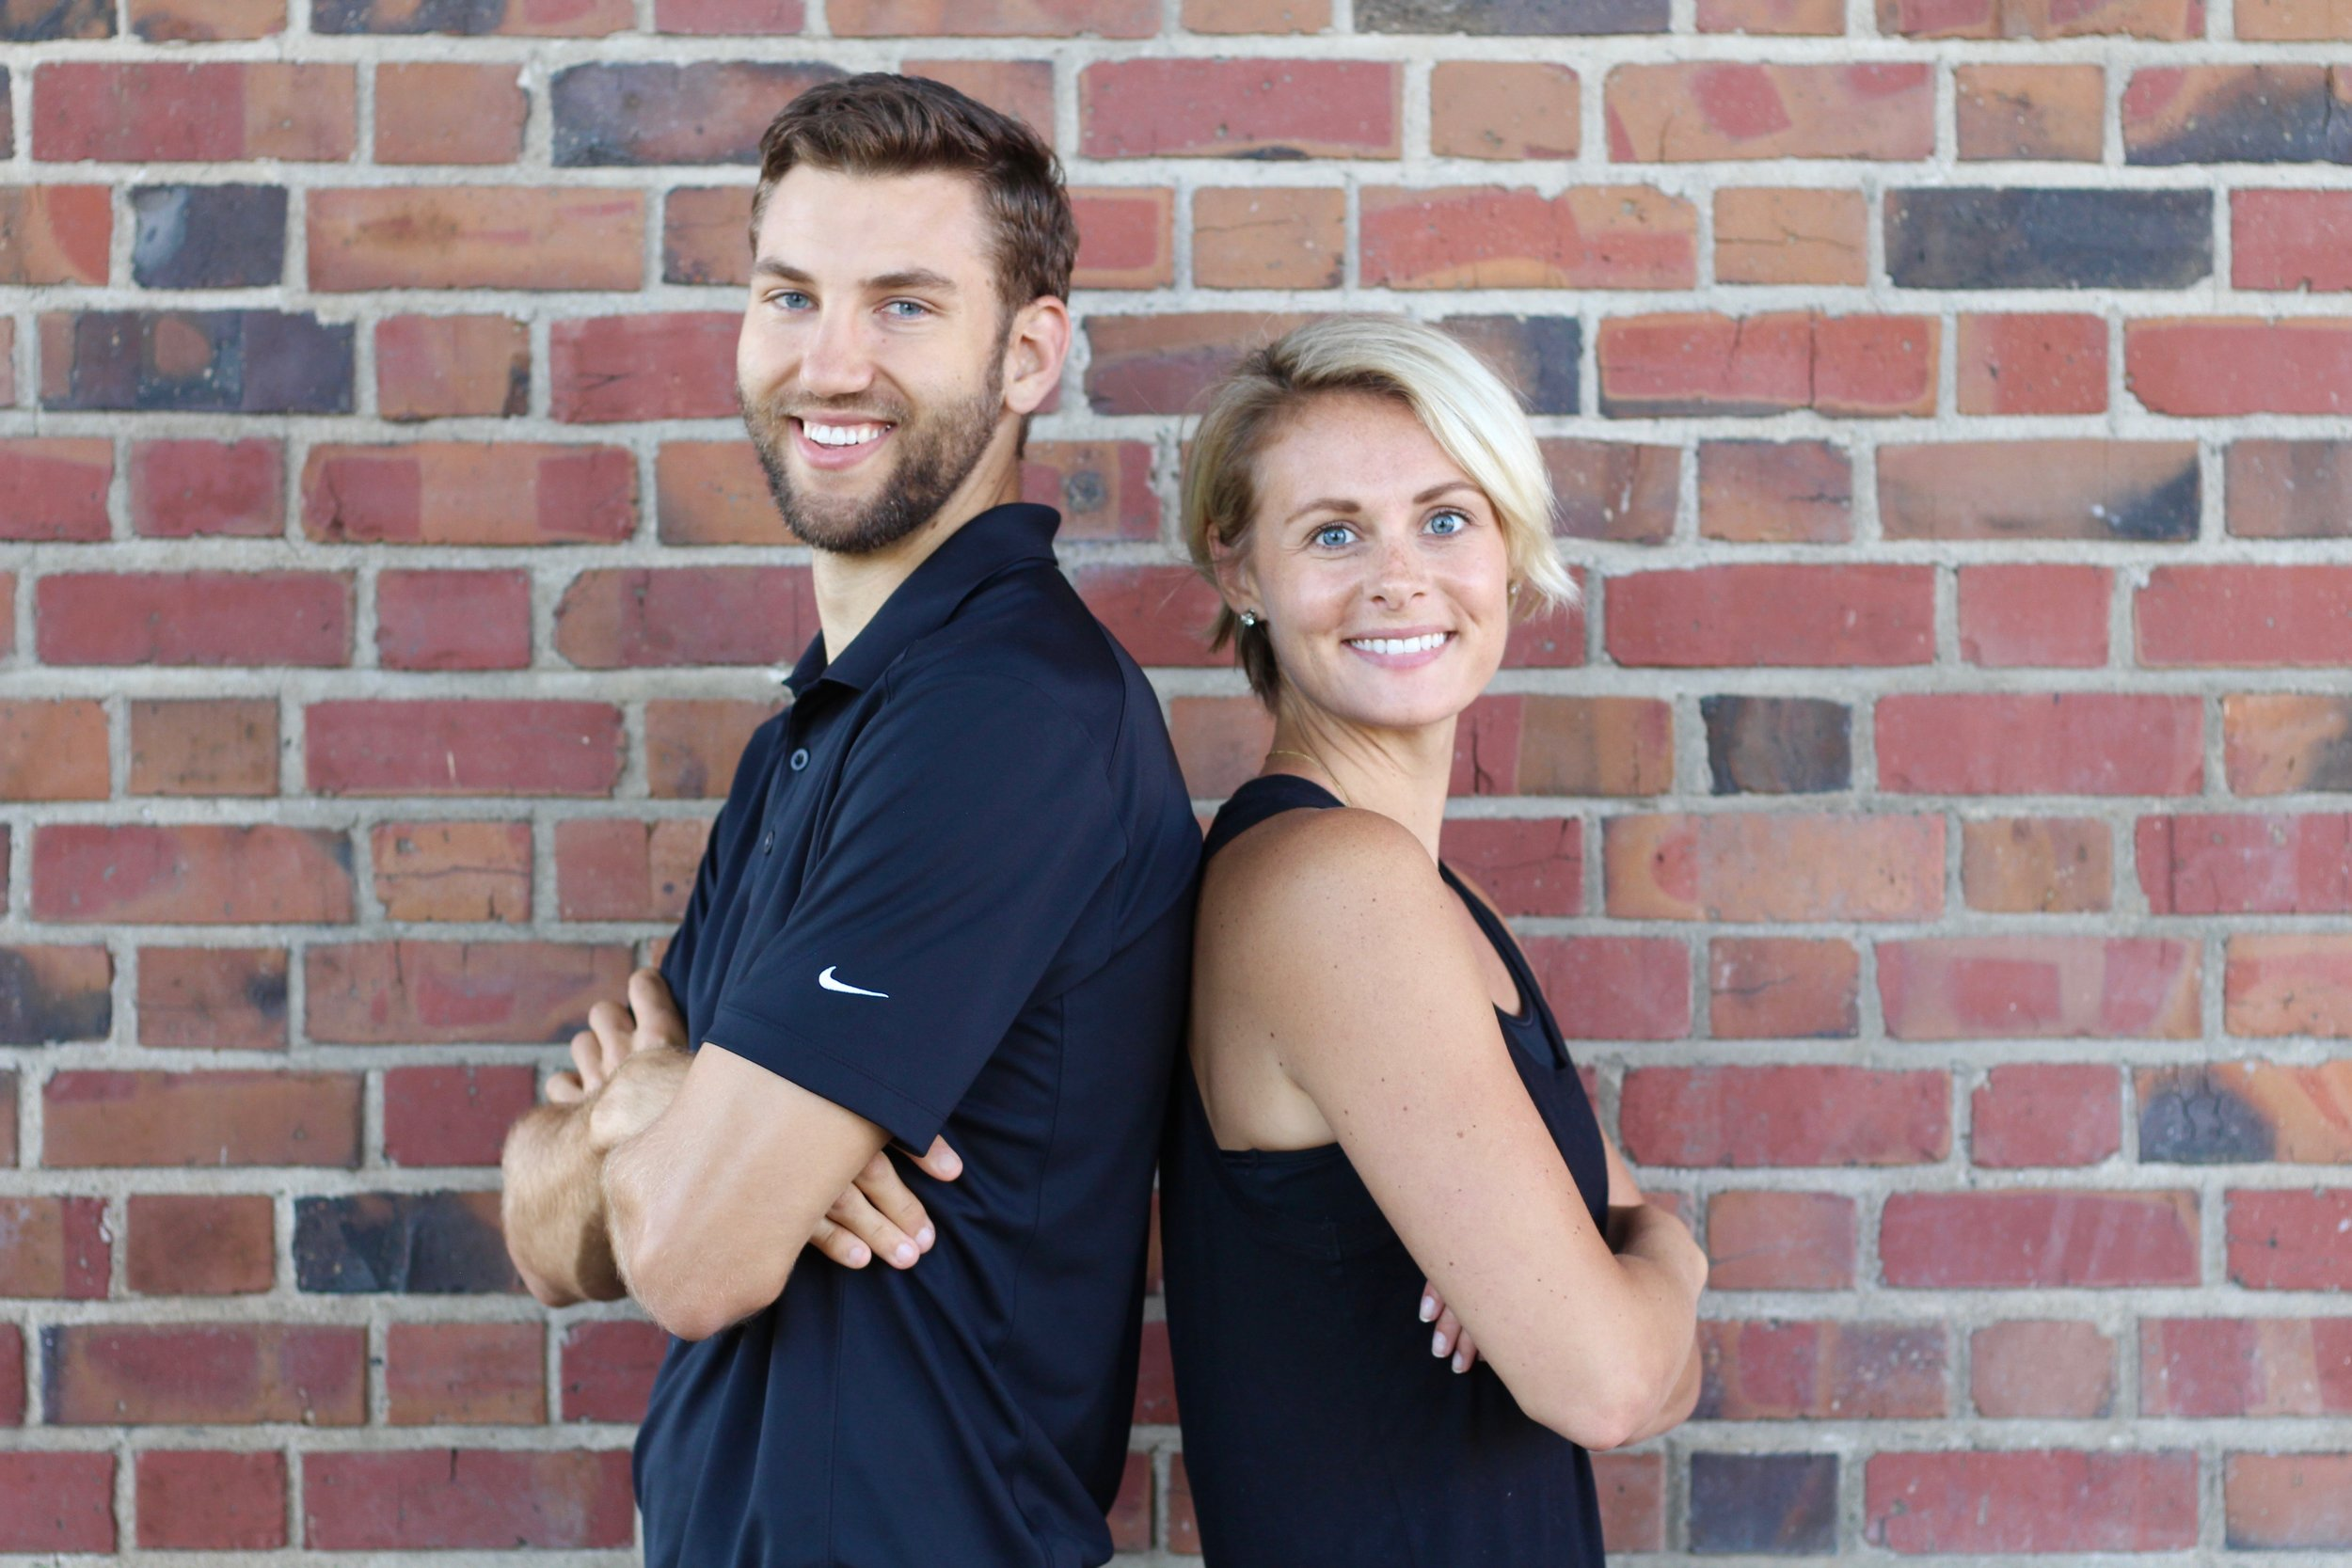 Reid Pearson started HeroFuel with his wife Cassidy.